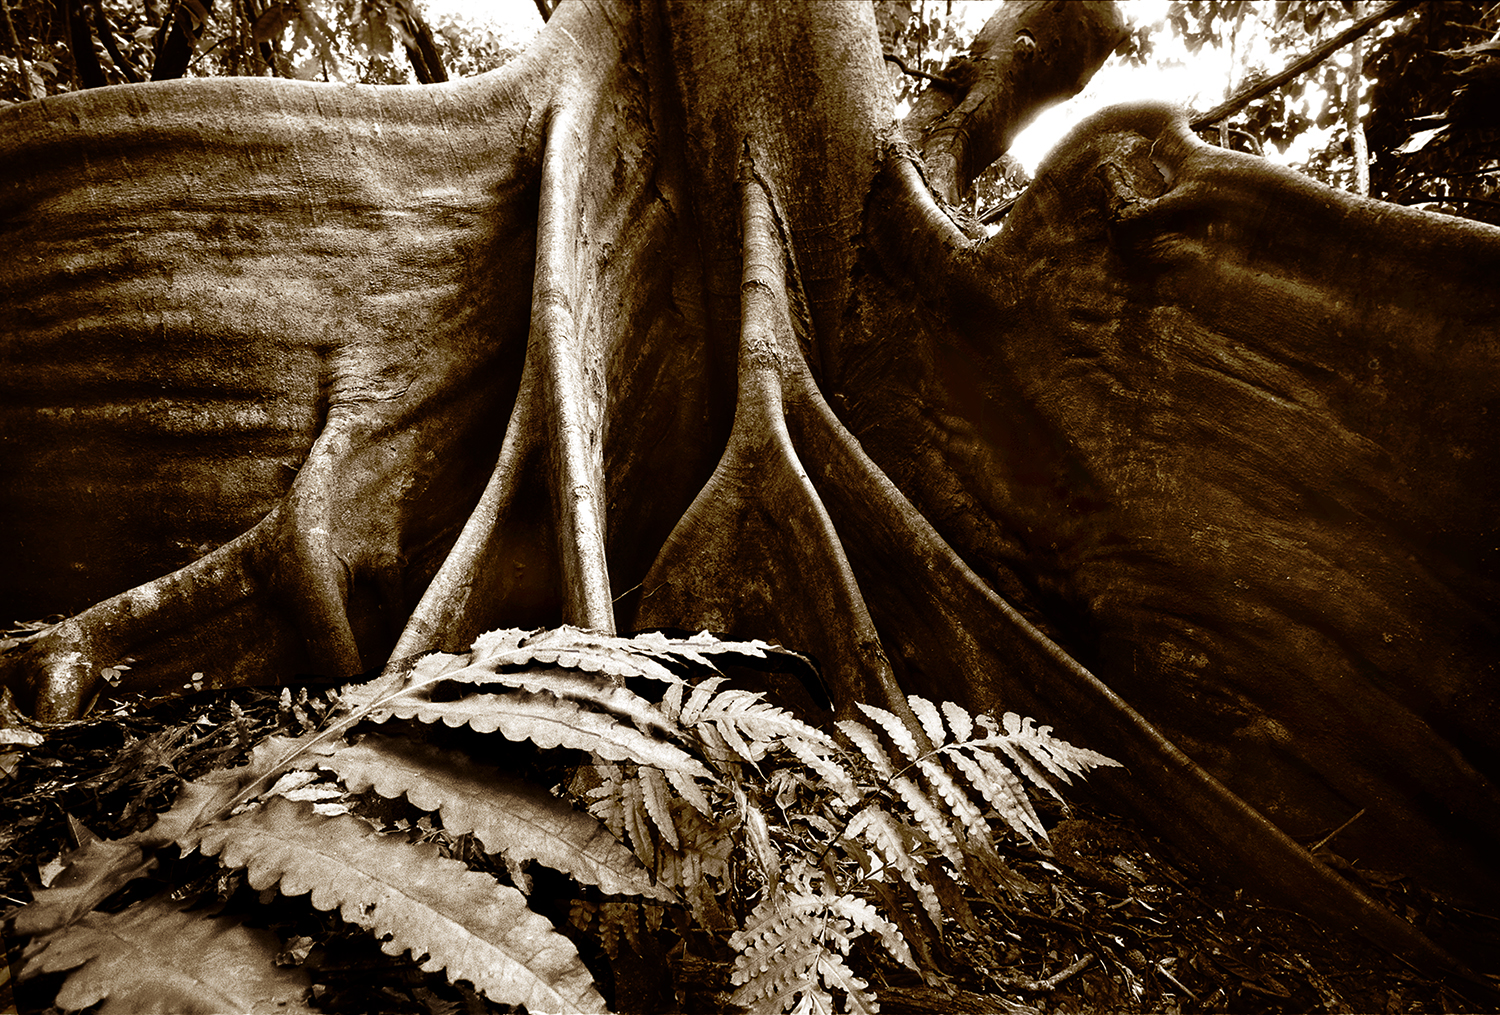 GIANT FIG TREE ROOTS